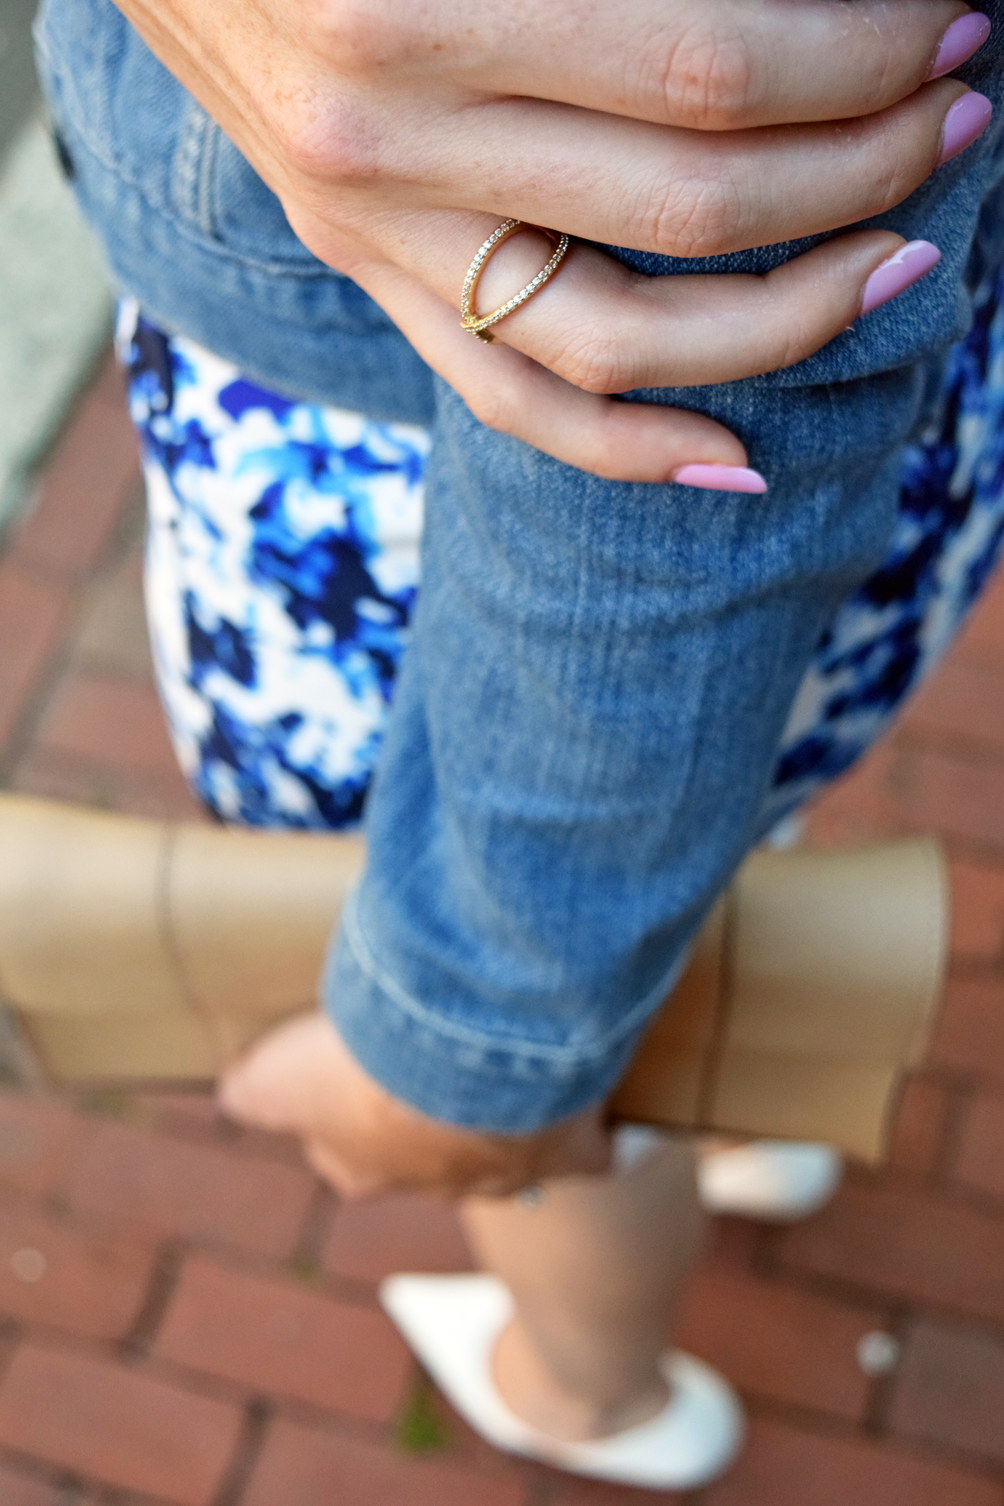 pink nails and gold criss-cross ring